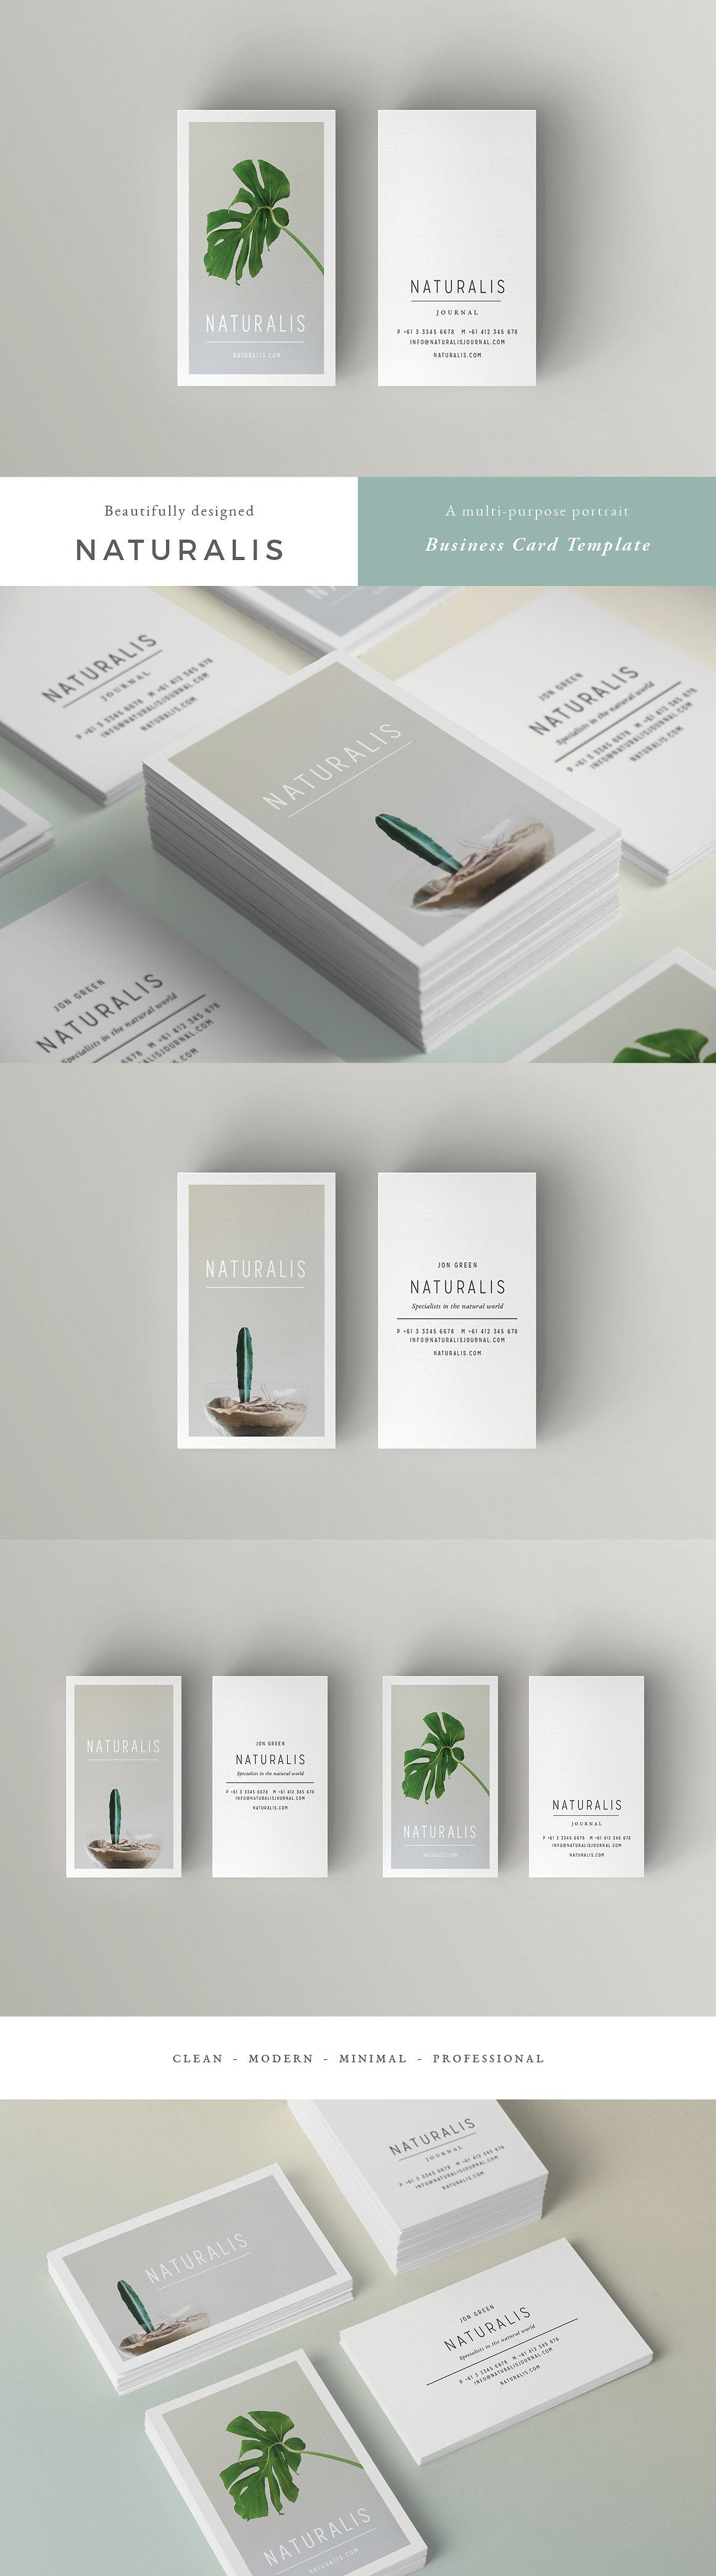 20 Clean and Minimal Business Cards That Stand Out   Card templates ...